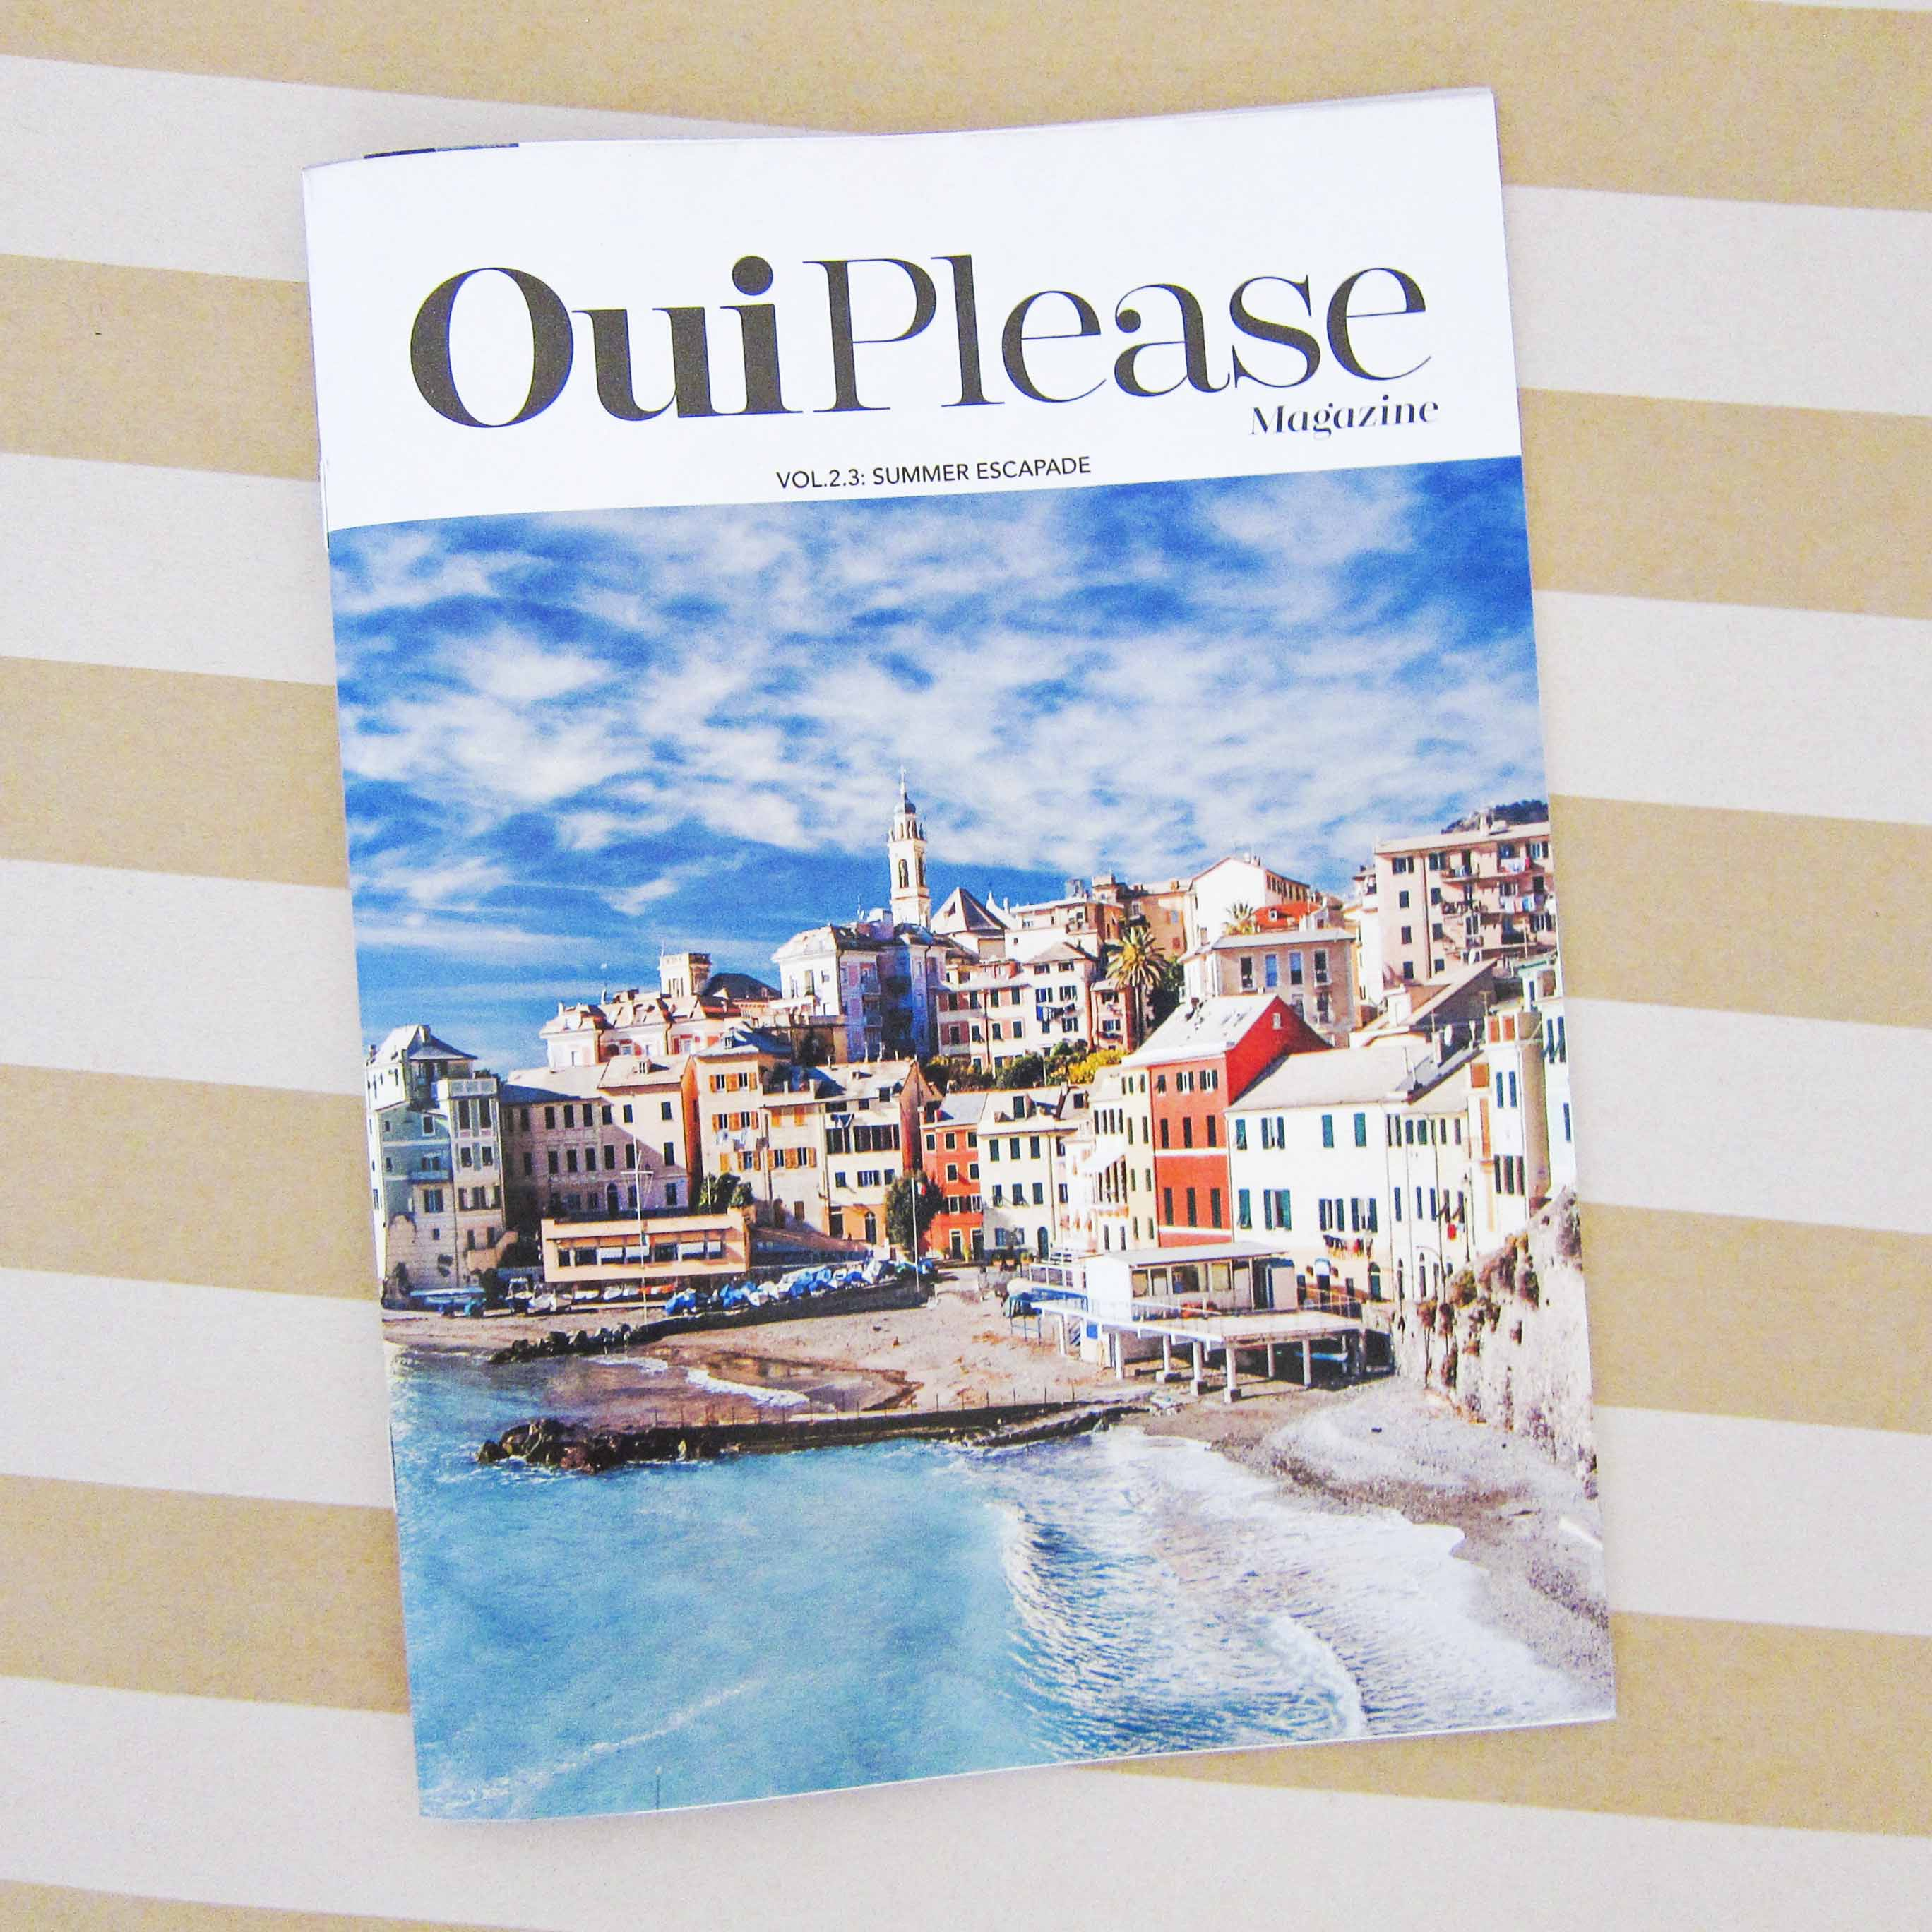 Oui Please Vol. 2.3 - Info Magazine